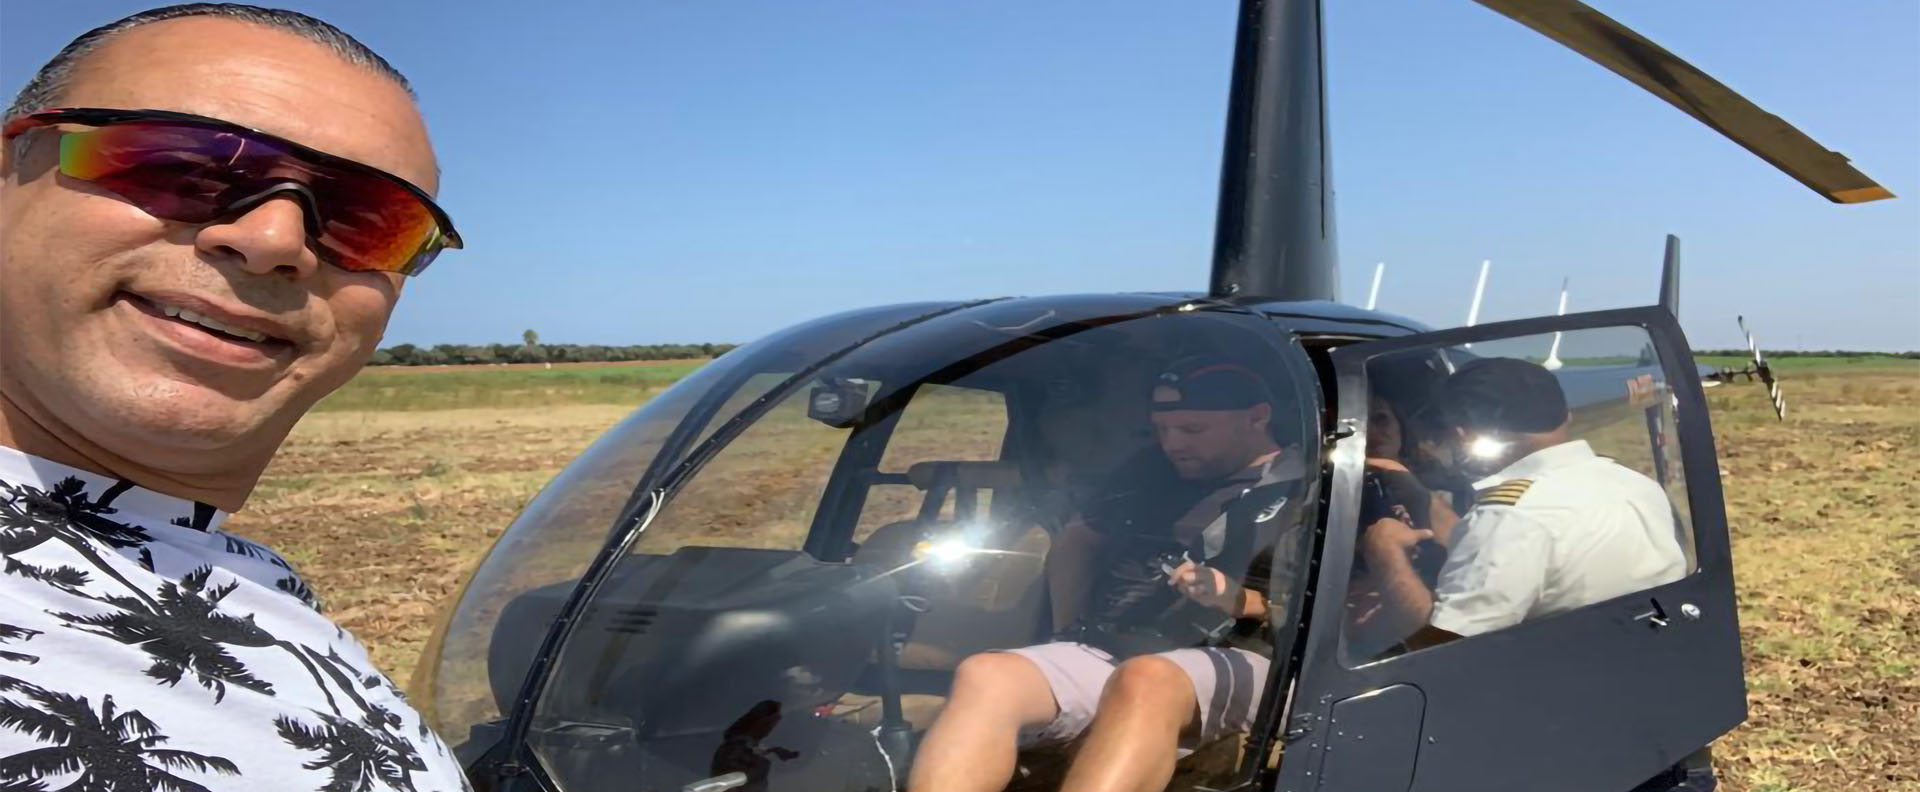 Helicopter tour in Israel | Holy Land VIP Tours